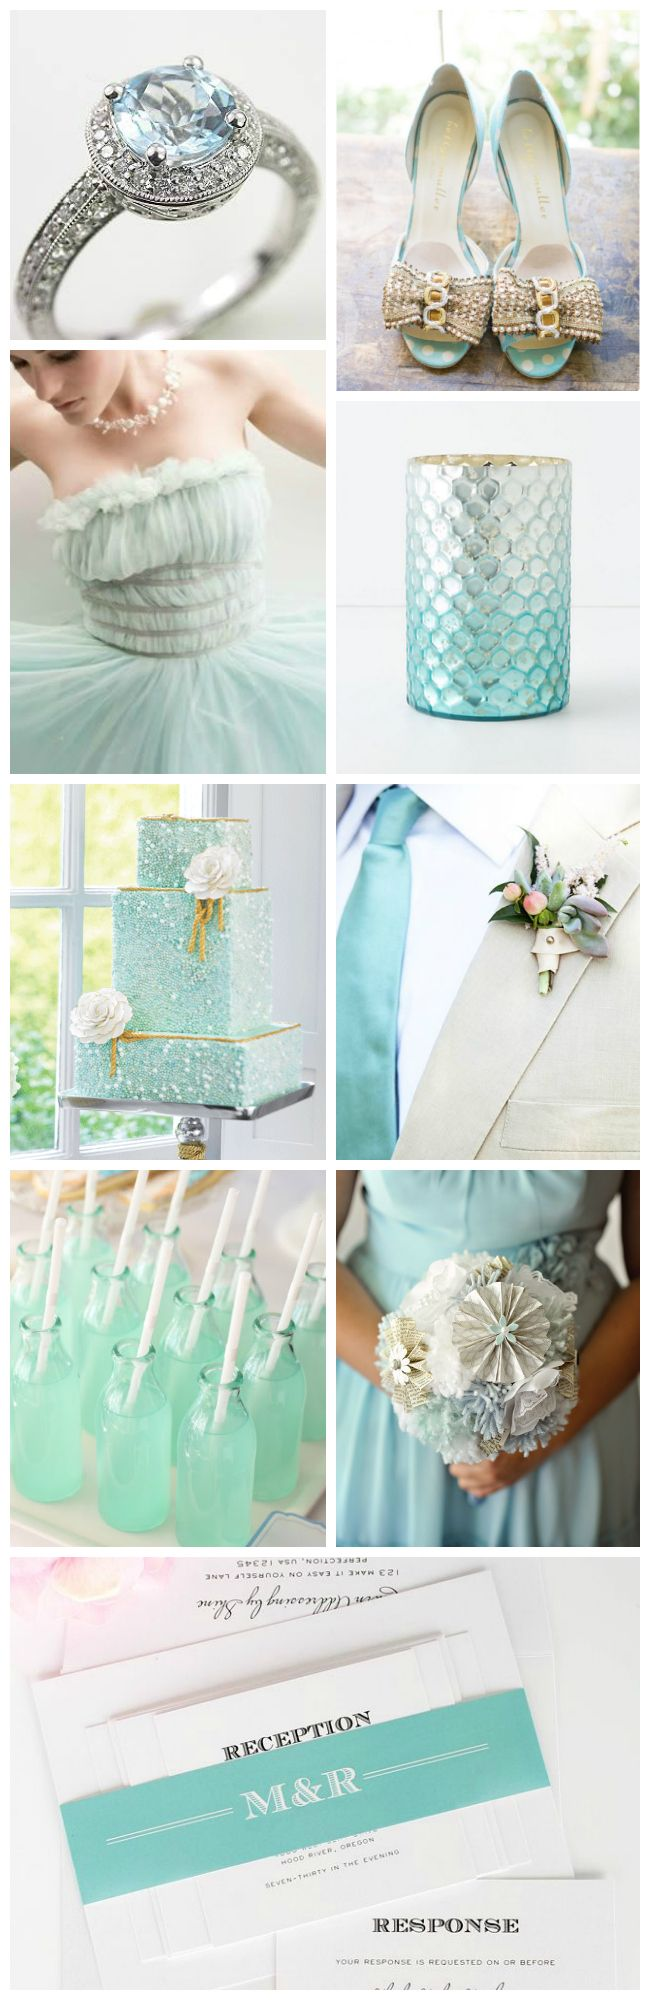 Aquamarine Wedding Inspiration - Find the matching invites here: http://www.shineweddinginvitations.com/wedding-invitations/antique-vintage-wedding-invitations